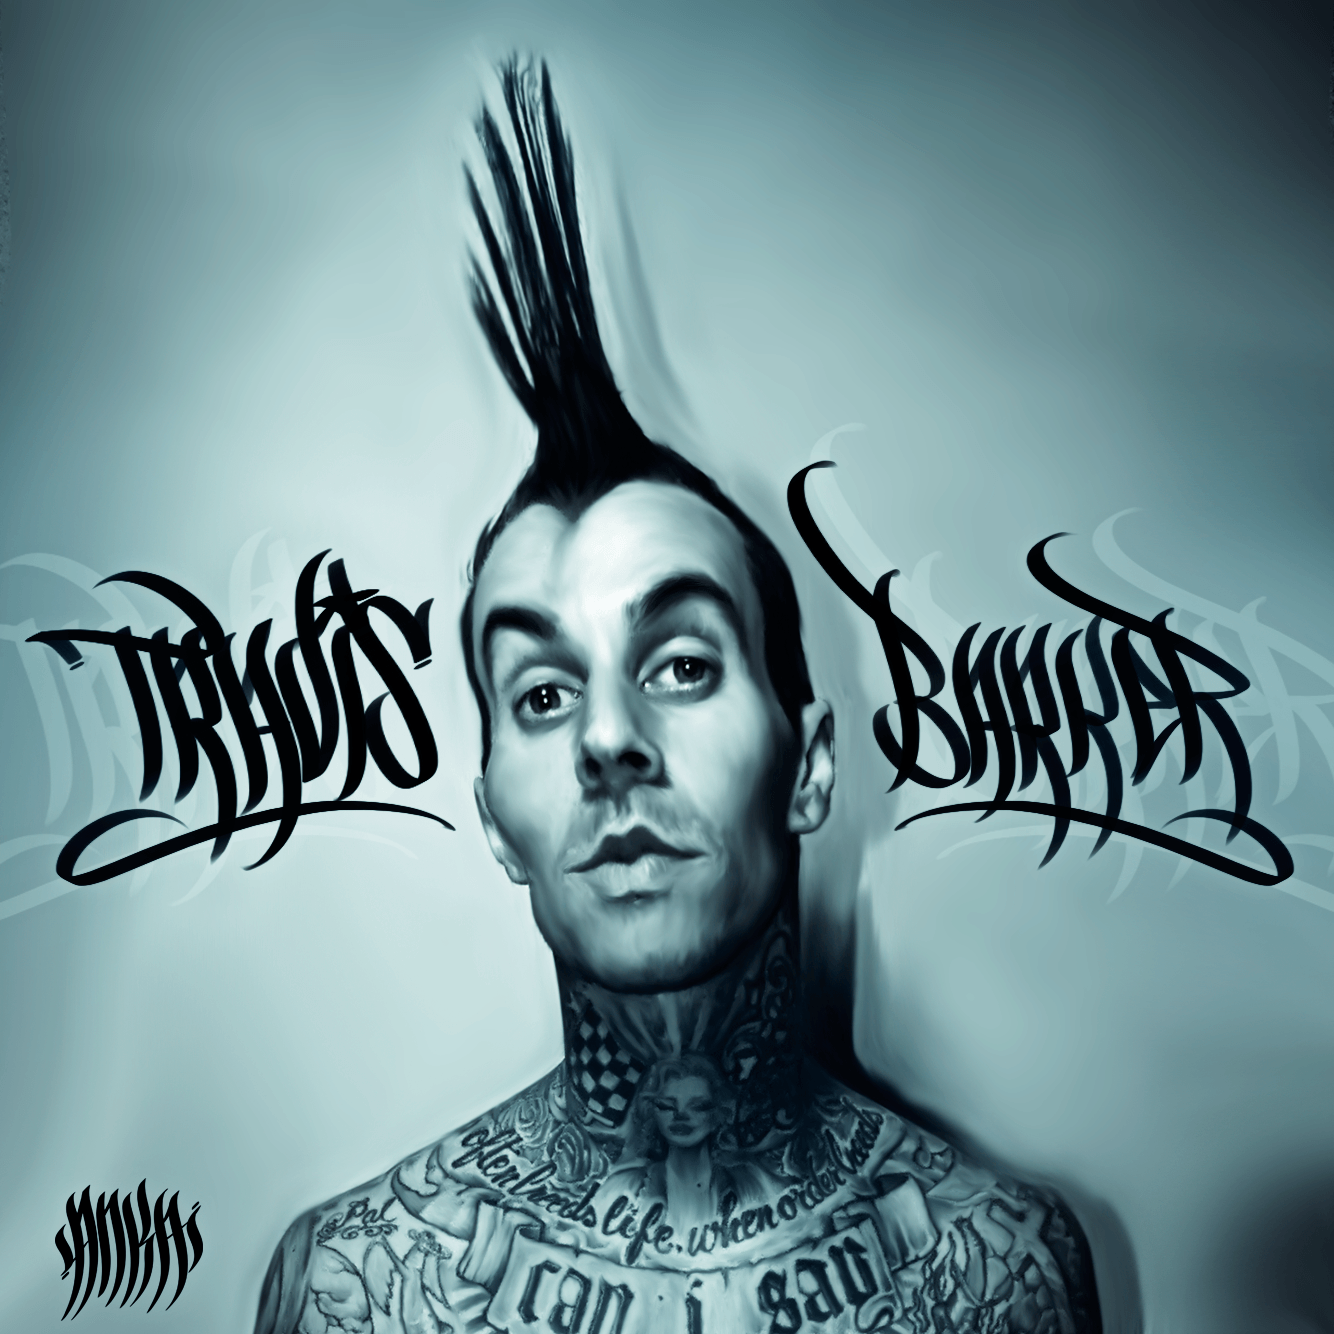 Travis Barker Smudge Art by Bhiqm on DeviantArt